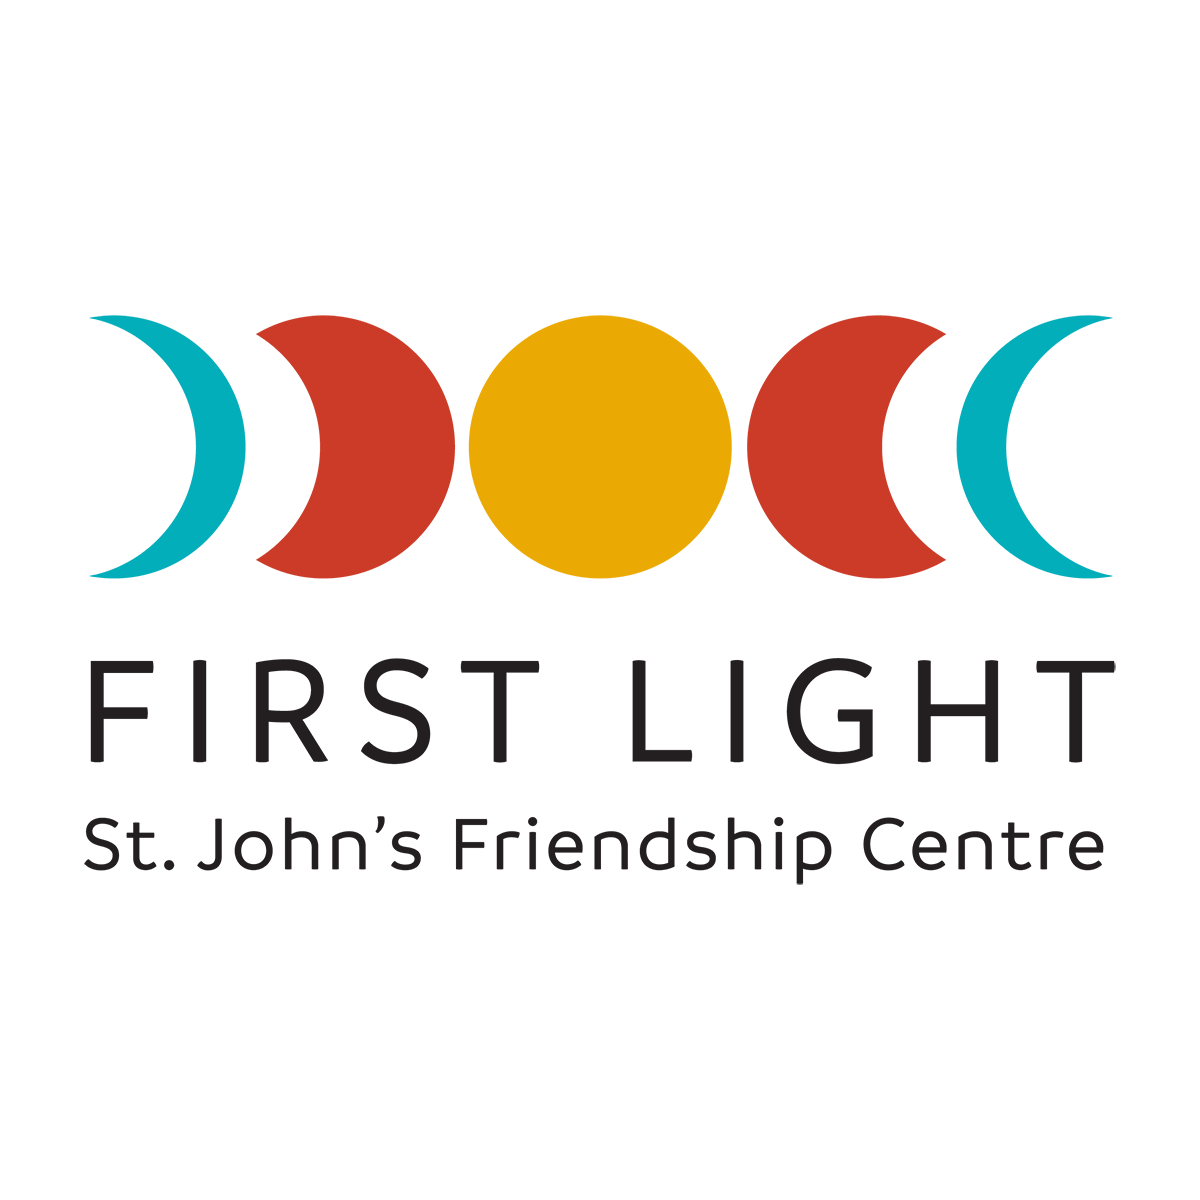 first-light-square-logo.png